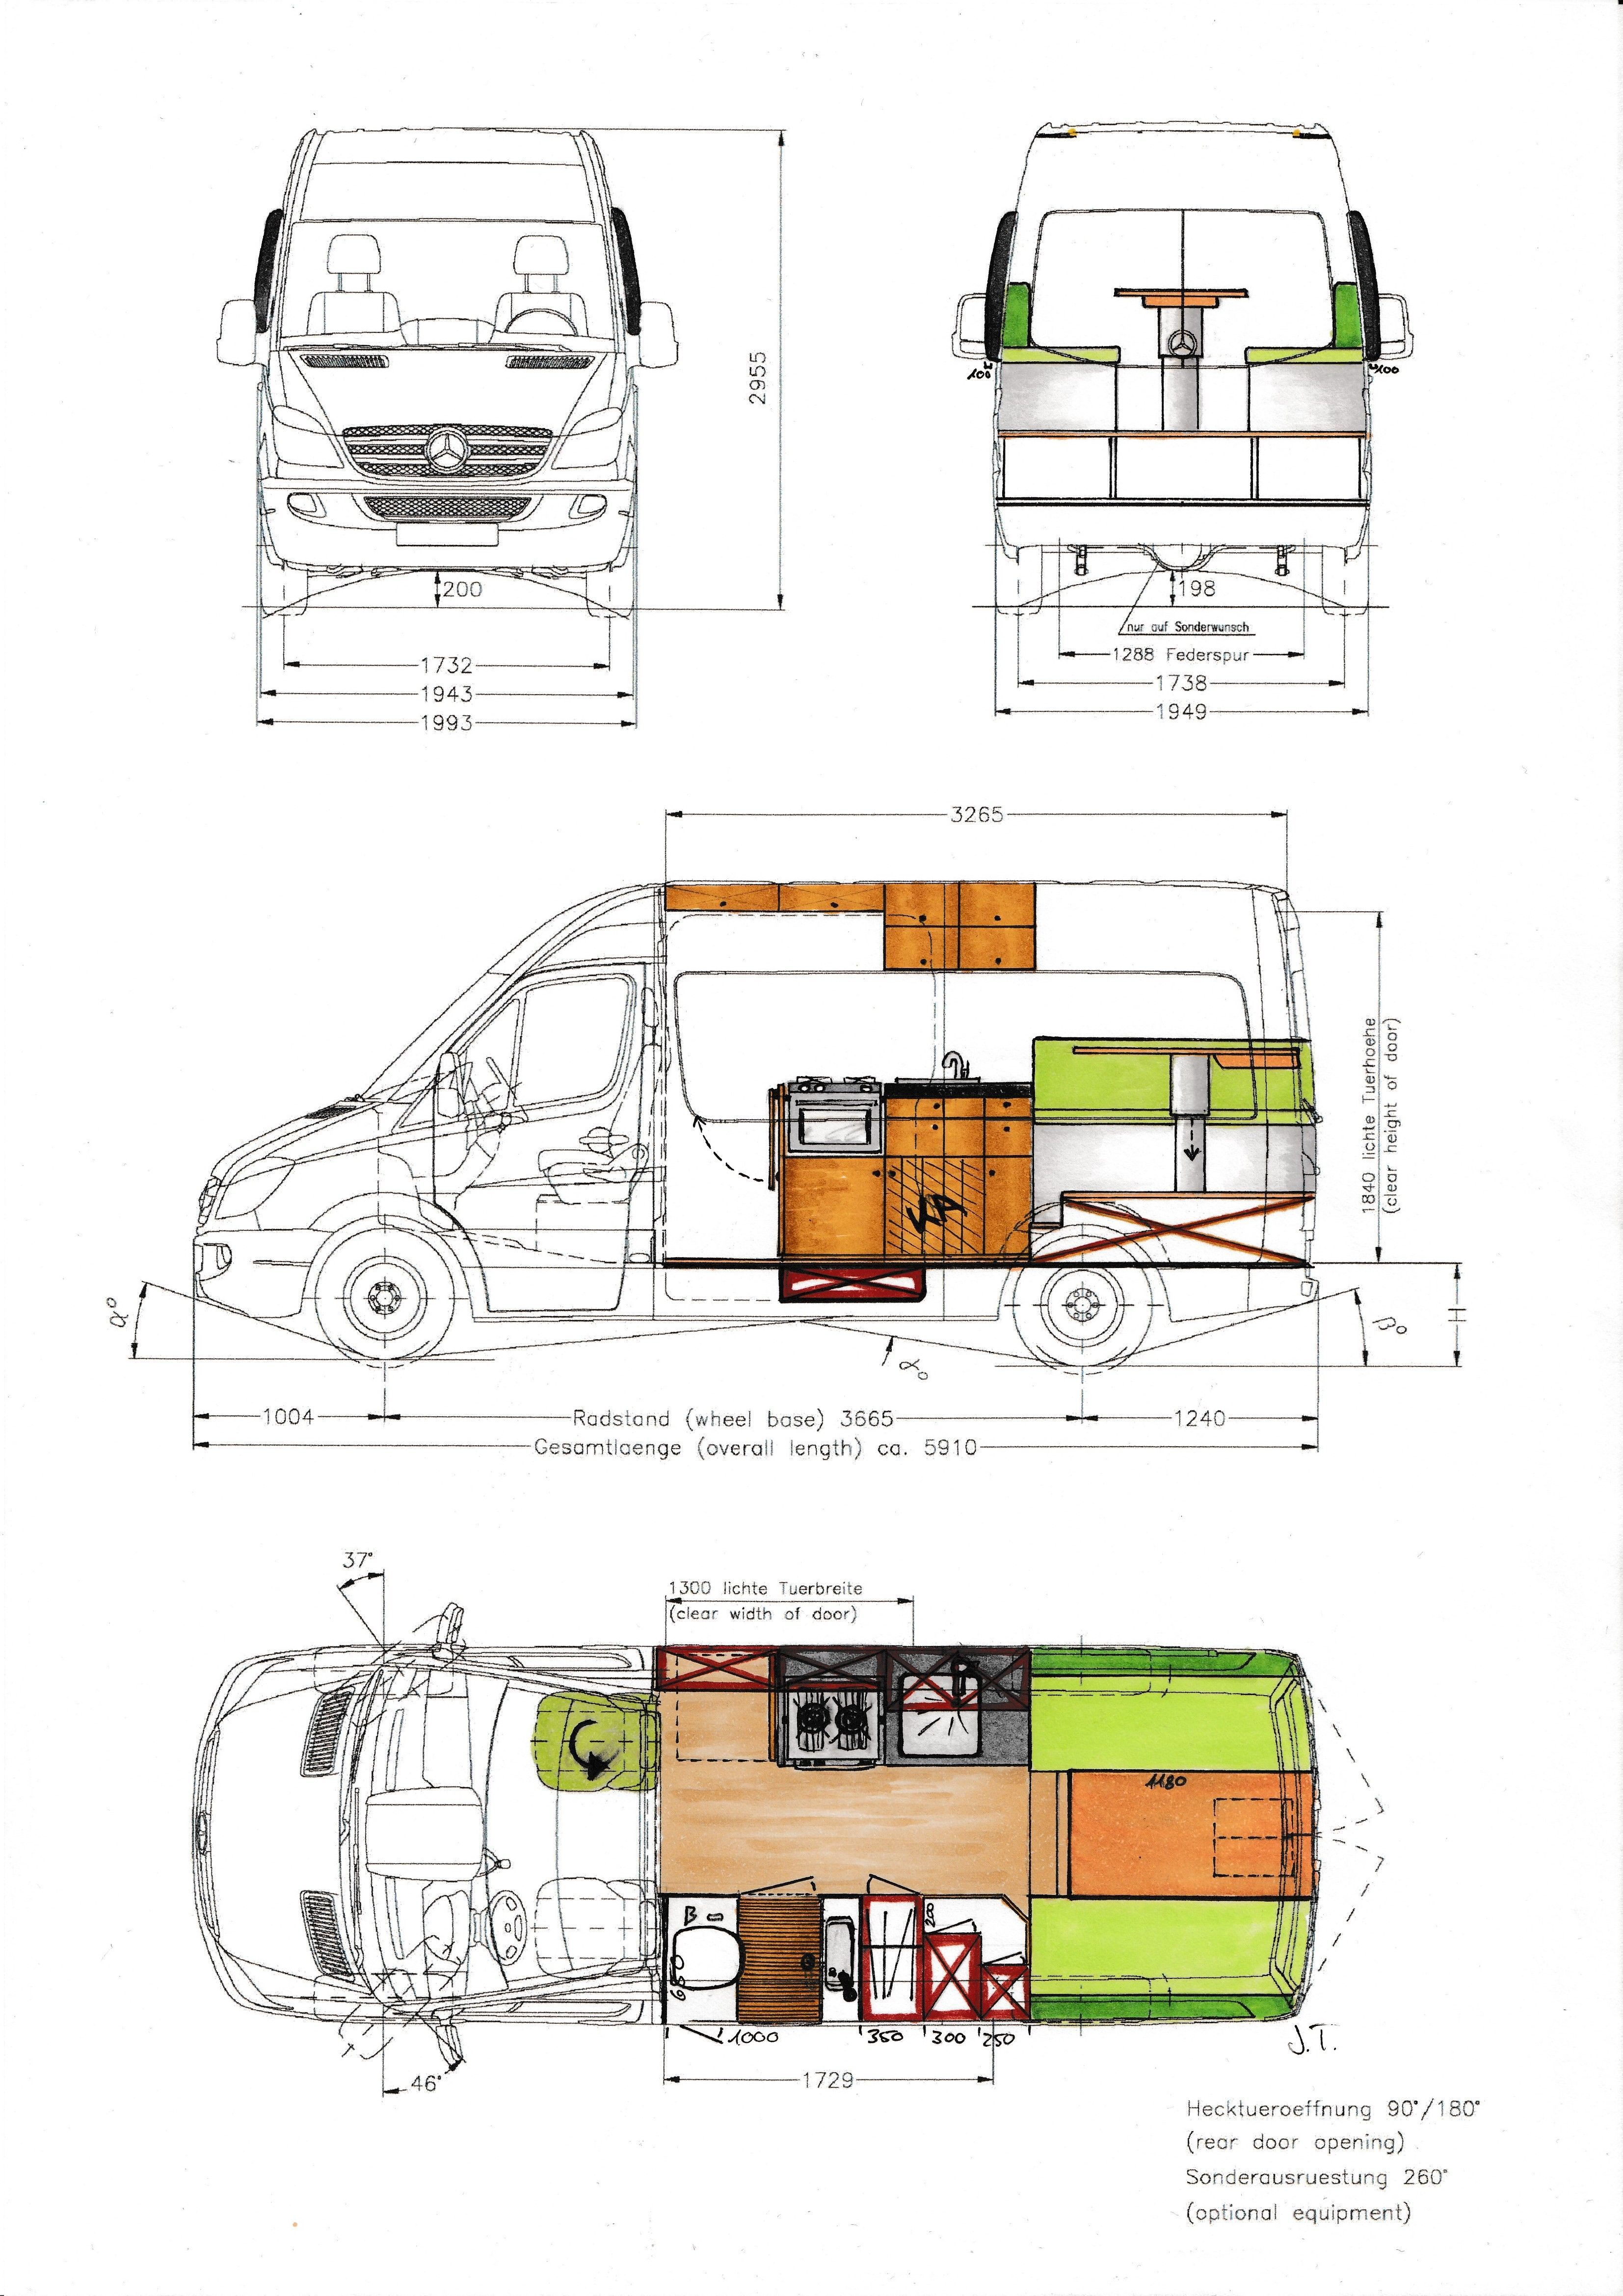 Conversion Plan And Starting Condition Of Our Sprinter Overlandys Lifequotes Simpl In 2020 Van Conversion Floor Plans Van Conversion Plans Camper Van Conversion Diy